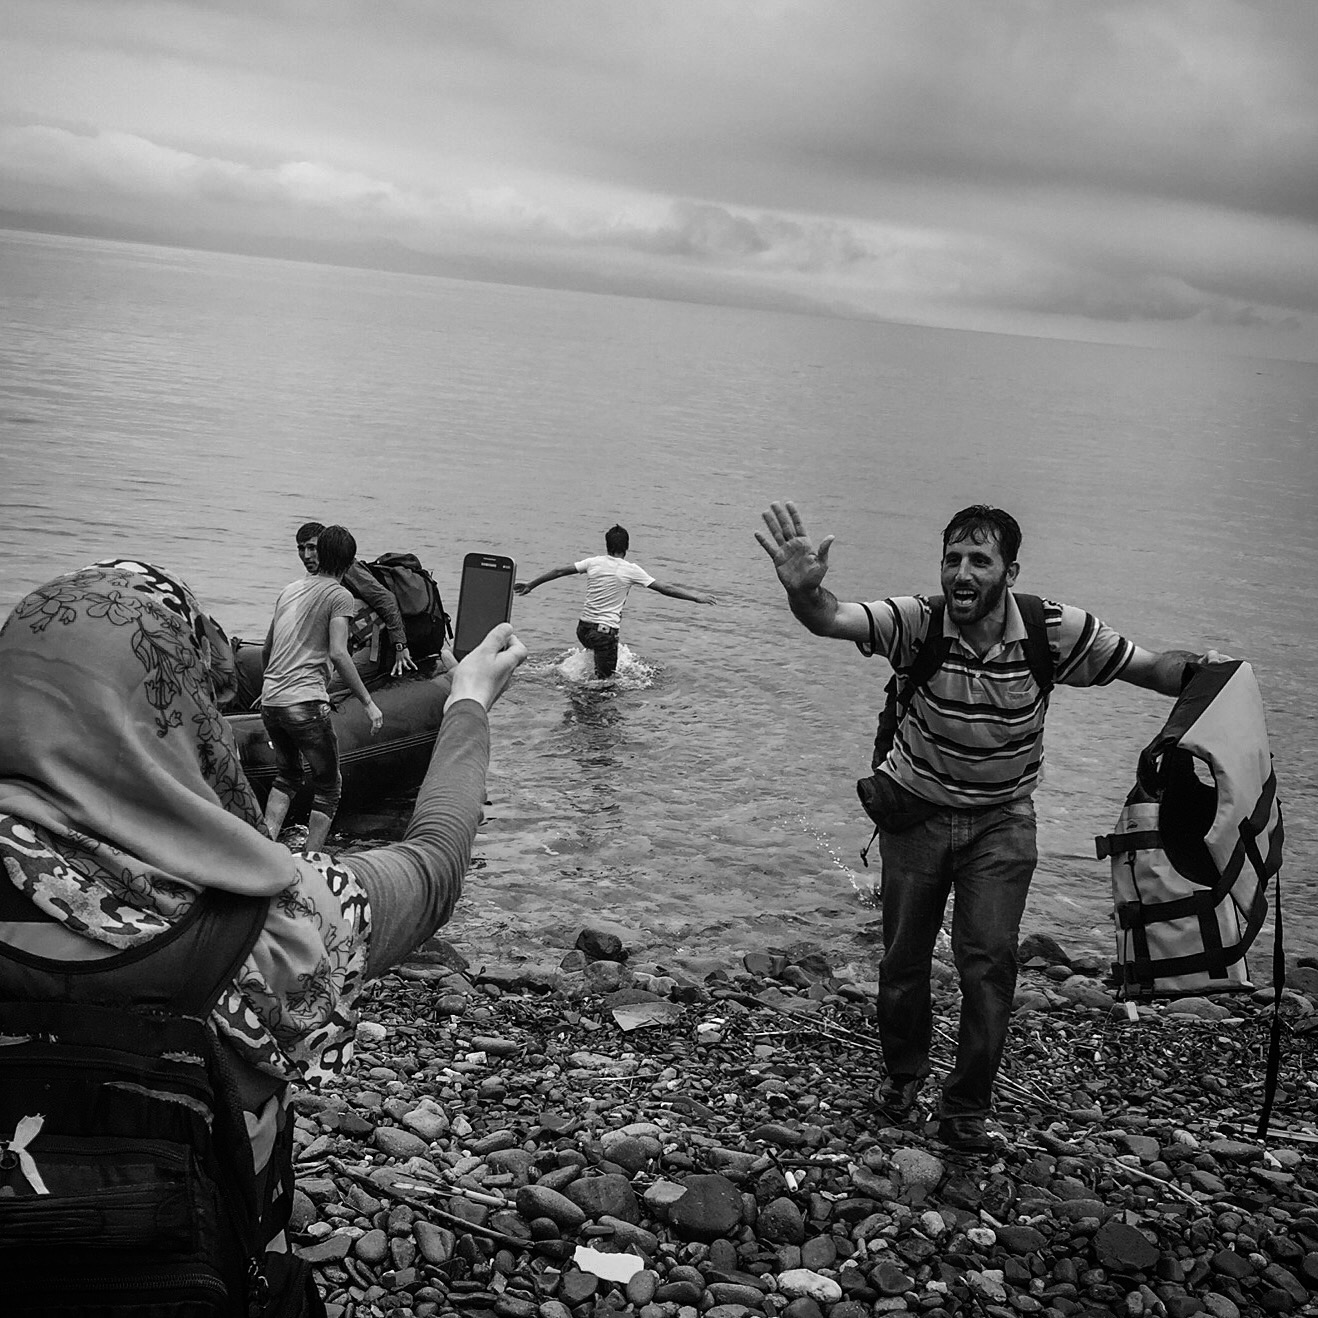 Refugees take photos on their cellphones after arriving on the island of Lesbos in Greece.